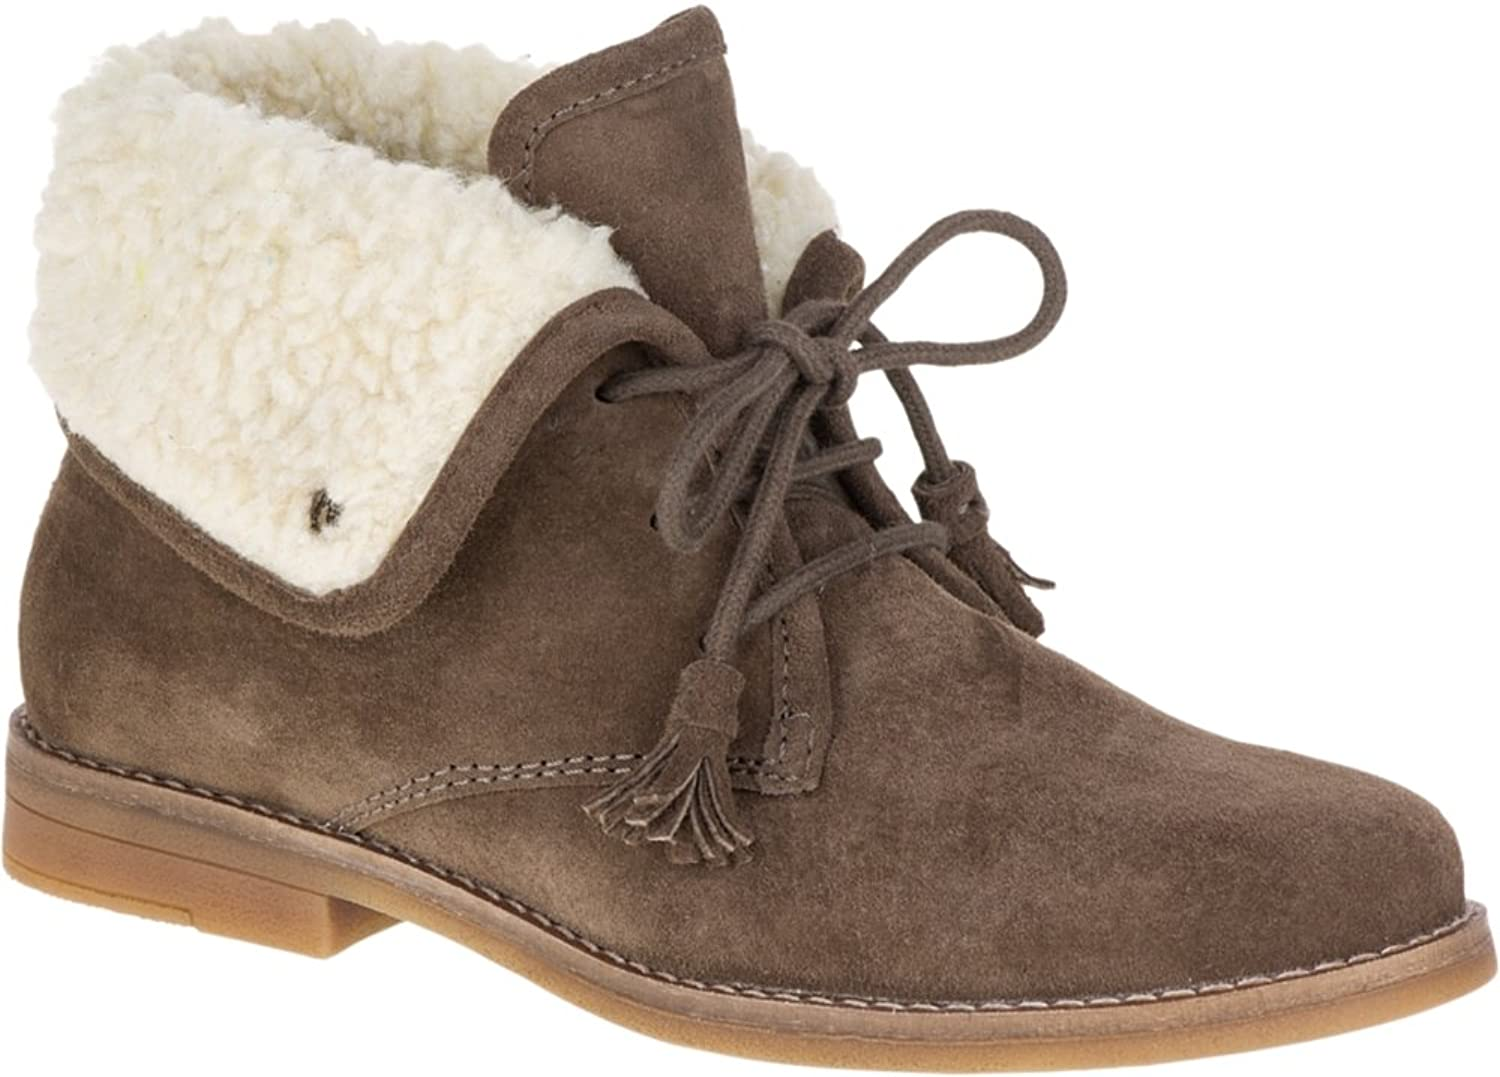 Hush Puppies Womens Marthe Cayto Ankle Bootie